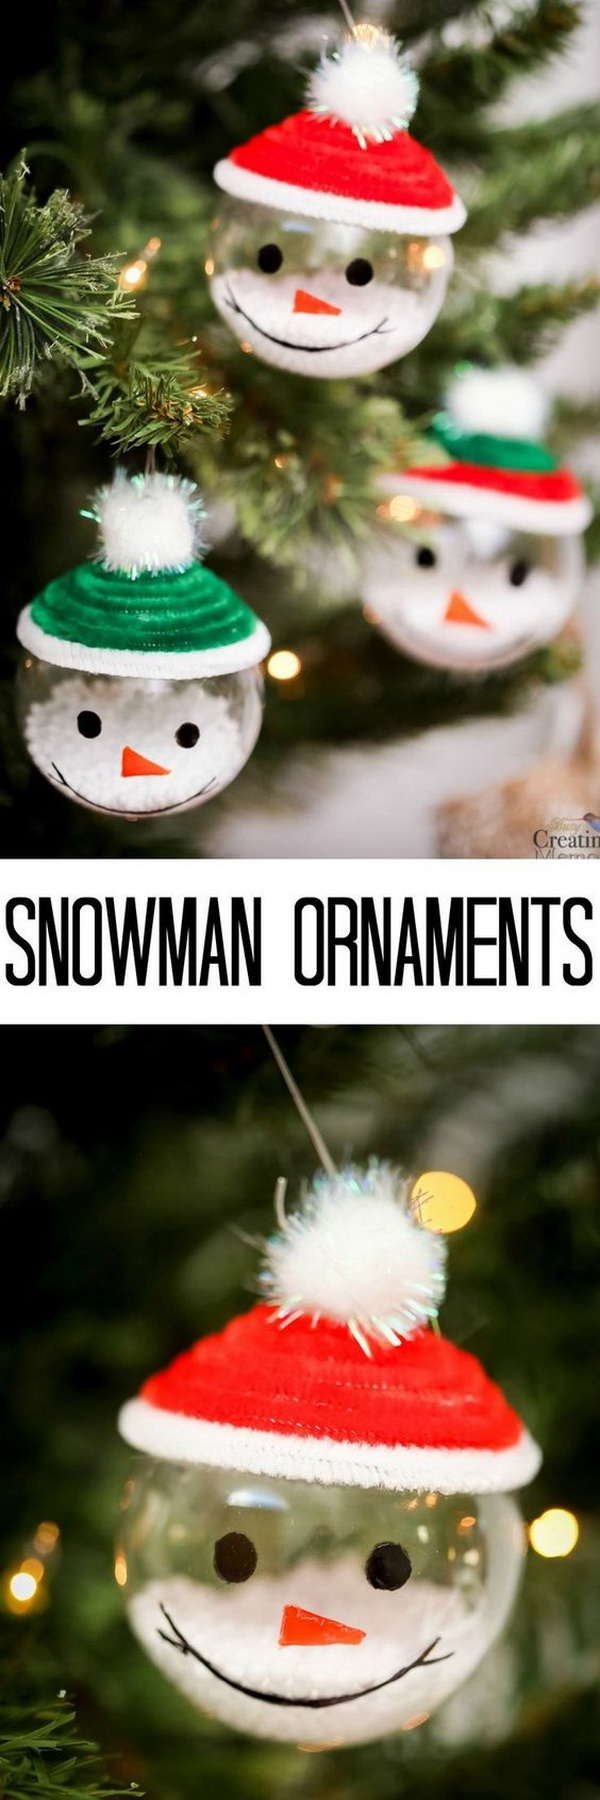 Adorable Snowman Ornaments. Bring winter indoors by decorating with these easy Snowman Ornaments. A great Christmas craft to make with the kids.